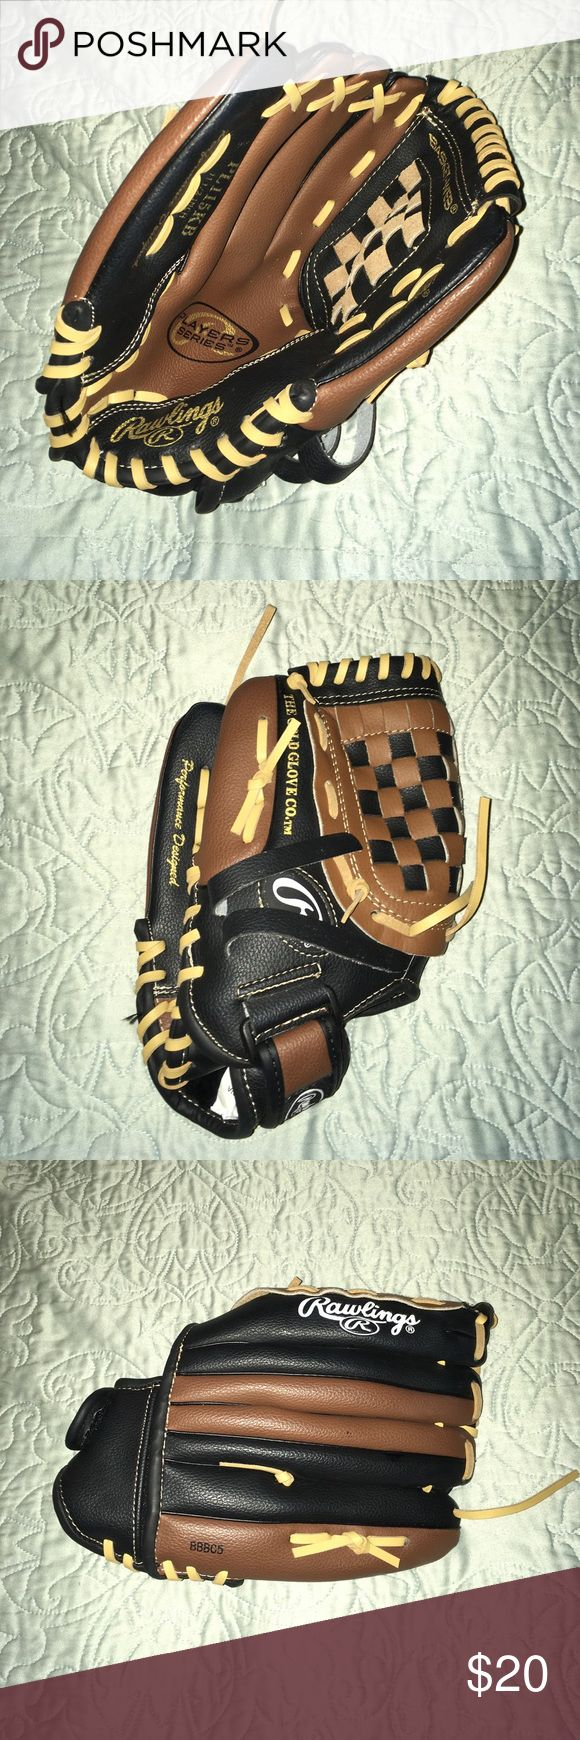 NWOT Rawlings Youth Baseball Glove 11 1/2 New never used baseball glove for players who are left handed and catch with their right hand Rawlings Other